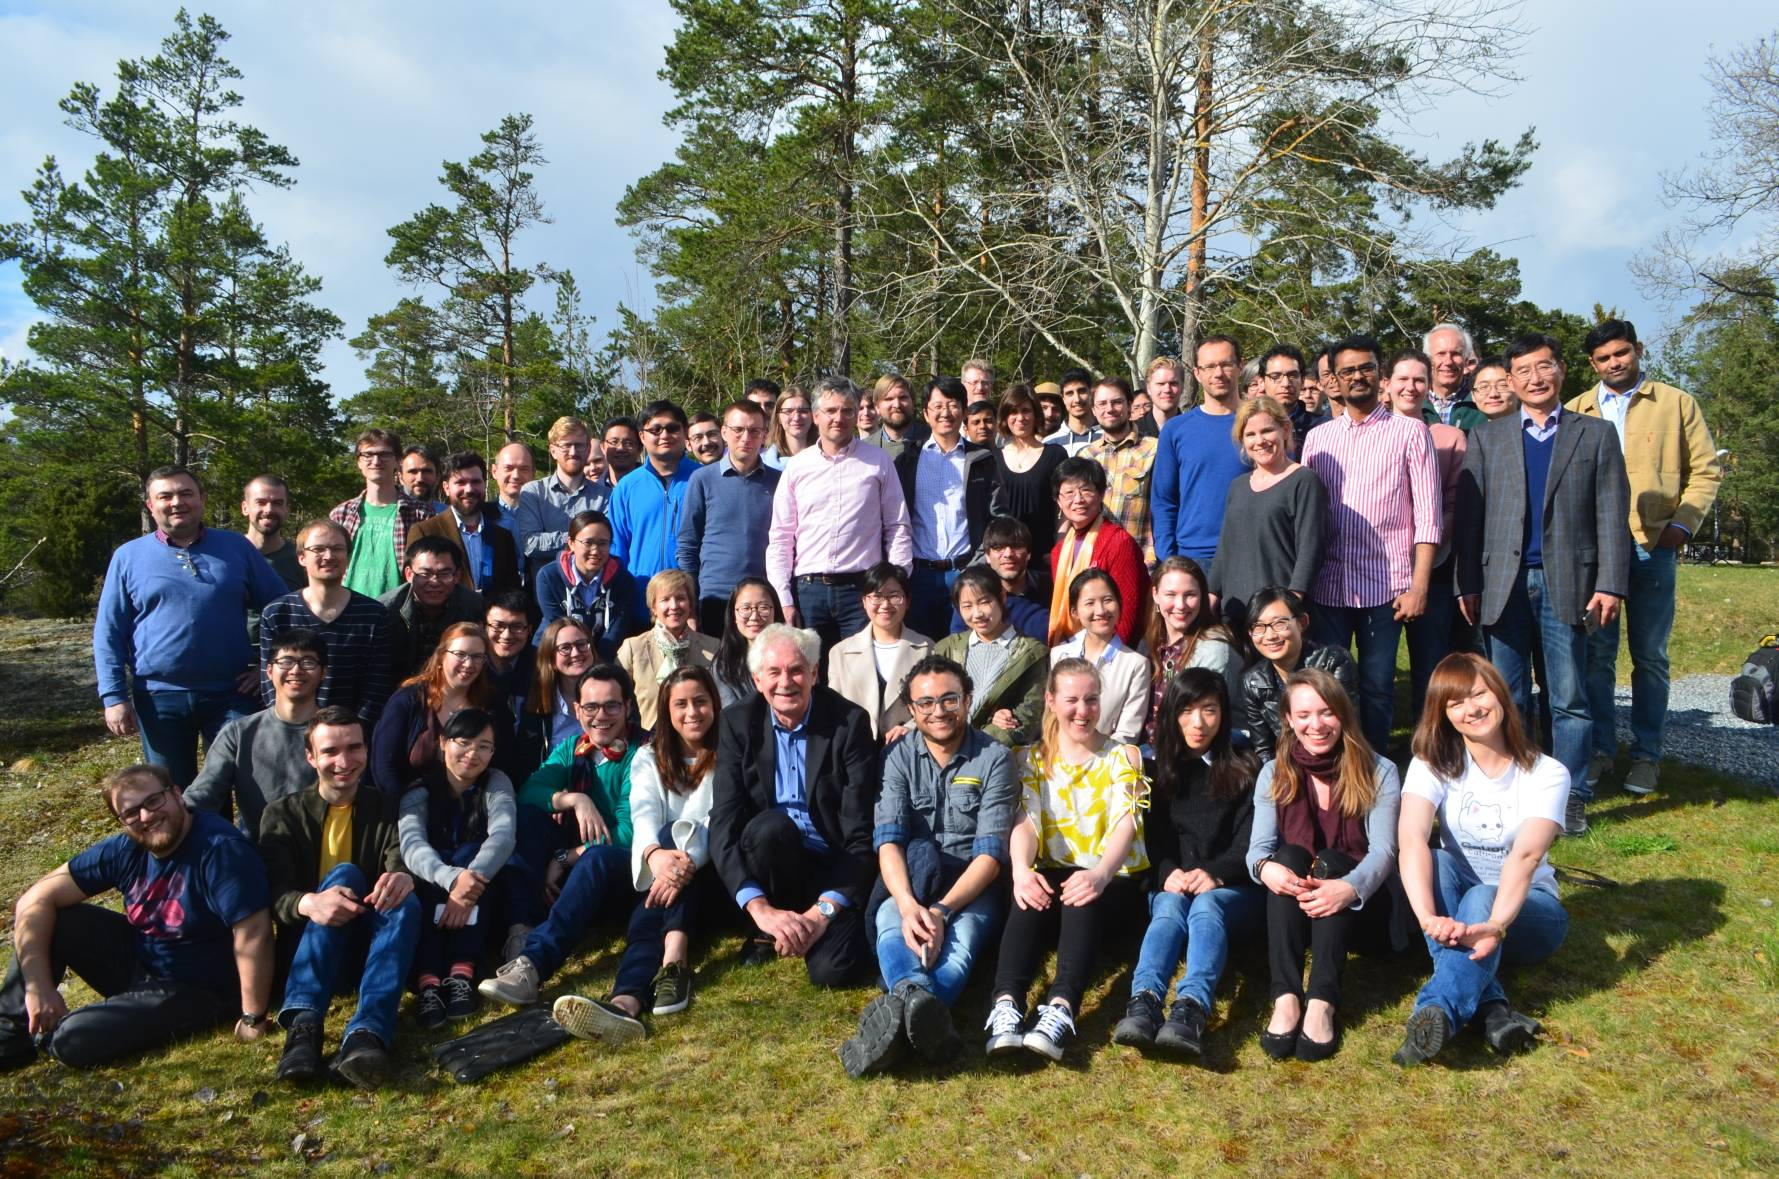 Participants in the CAP workshop in Sigtuna, Sweden, April 26-27, 2018.